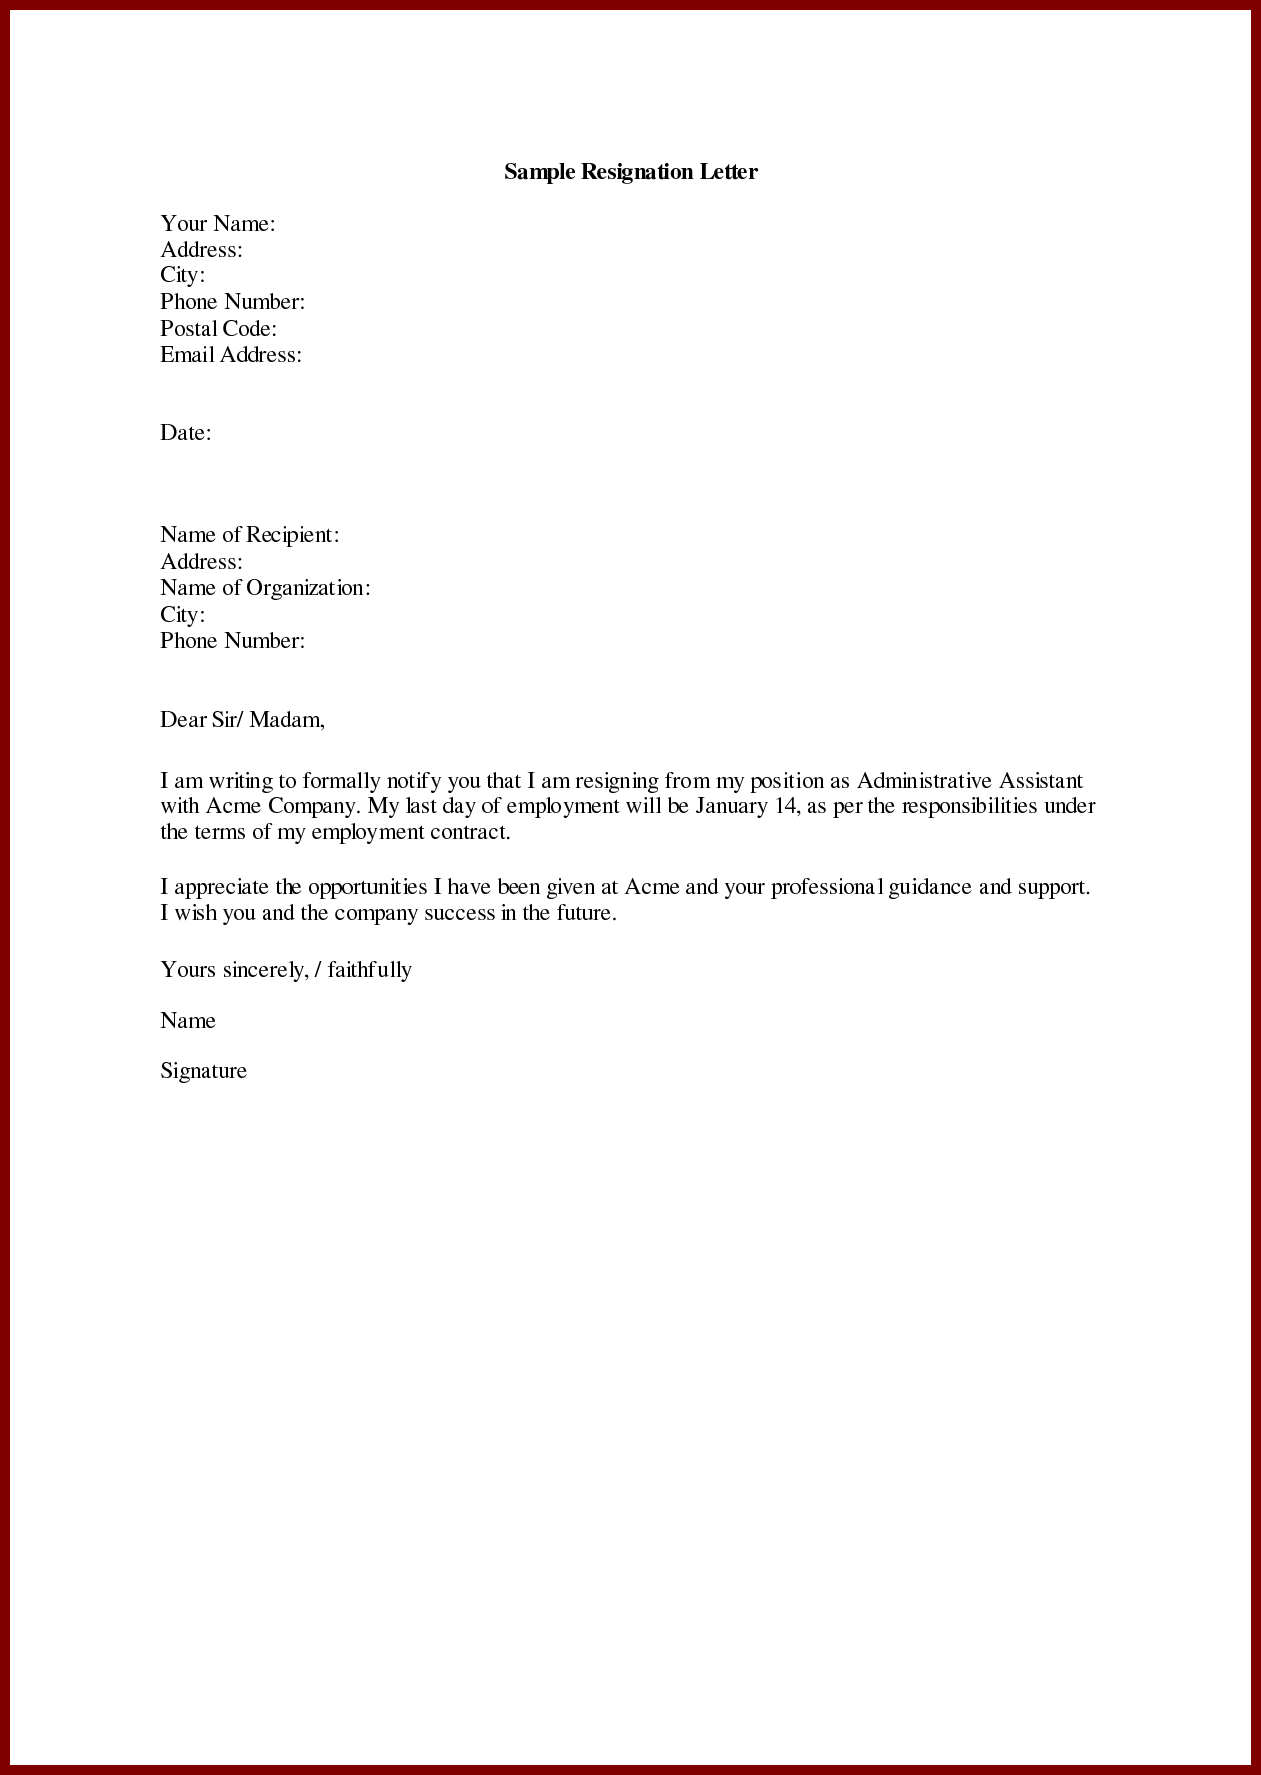 Sample of resignation letter for personal reasons capable imagine ...